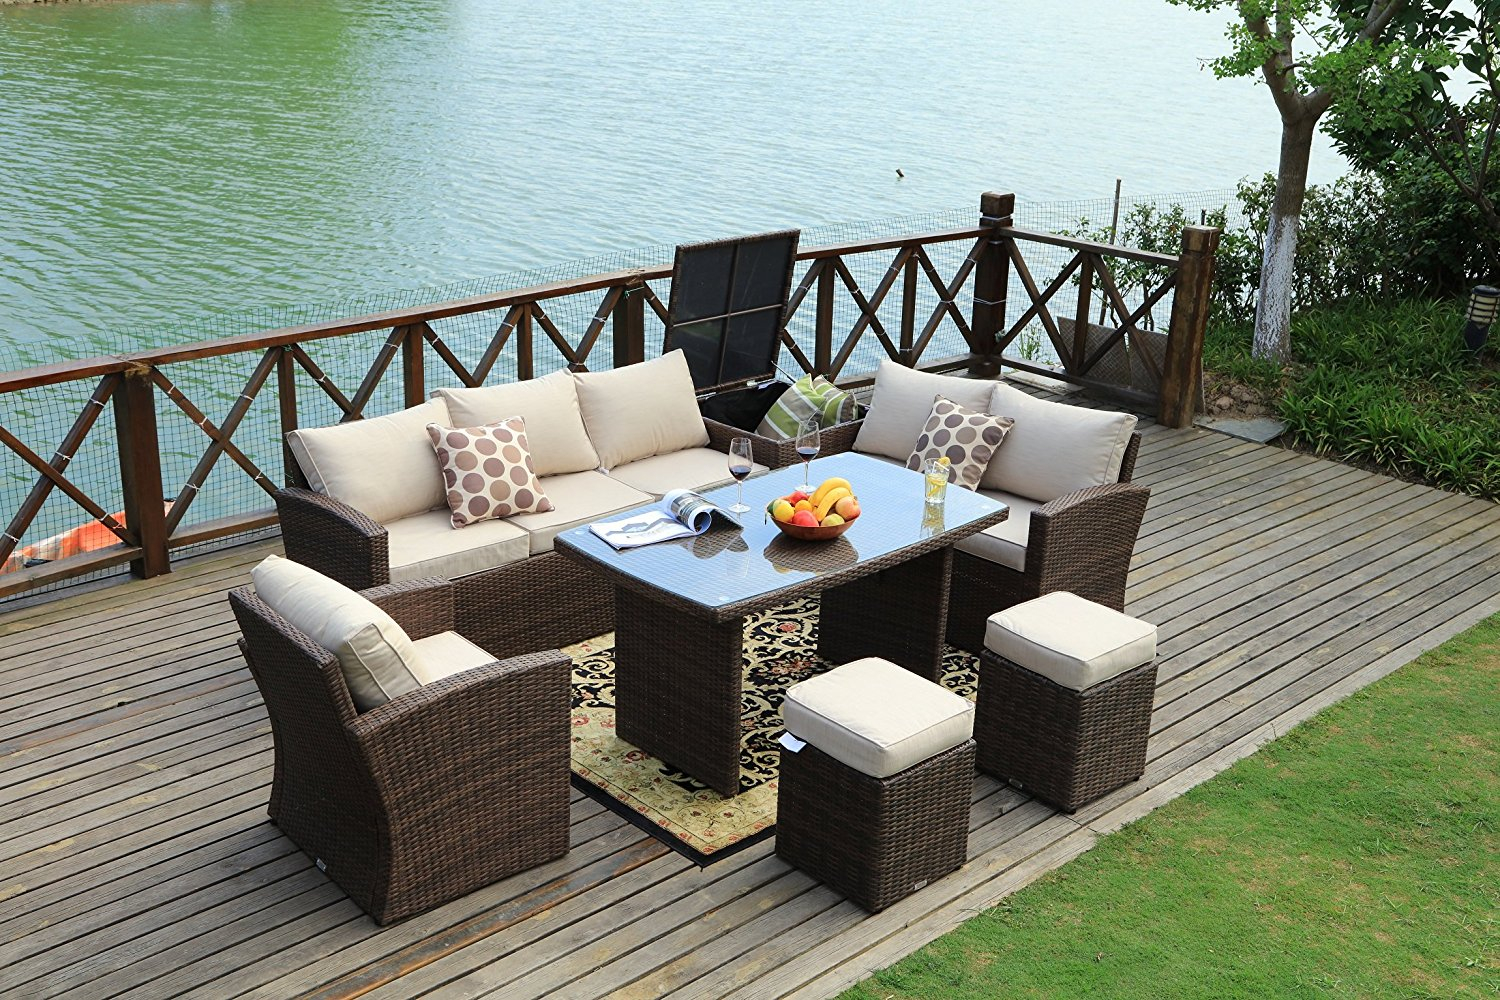 Mulan Brown Outdoor Patio Furniture Conversation Set 7 Piece intended for measurements 1500 X 1000